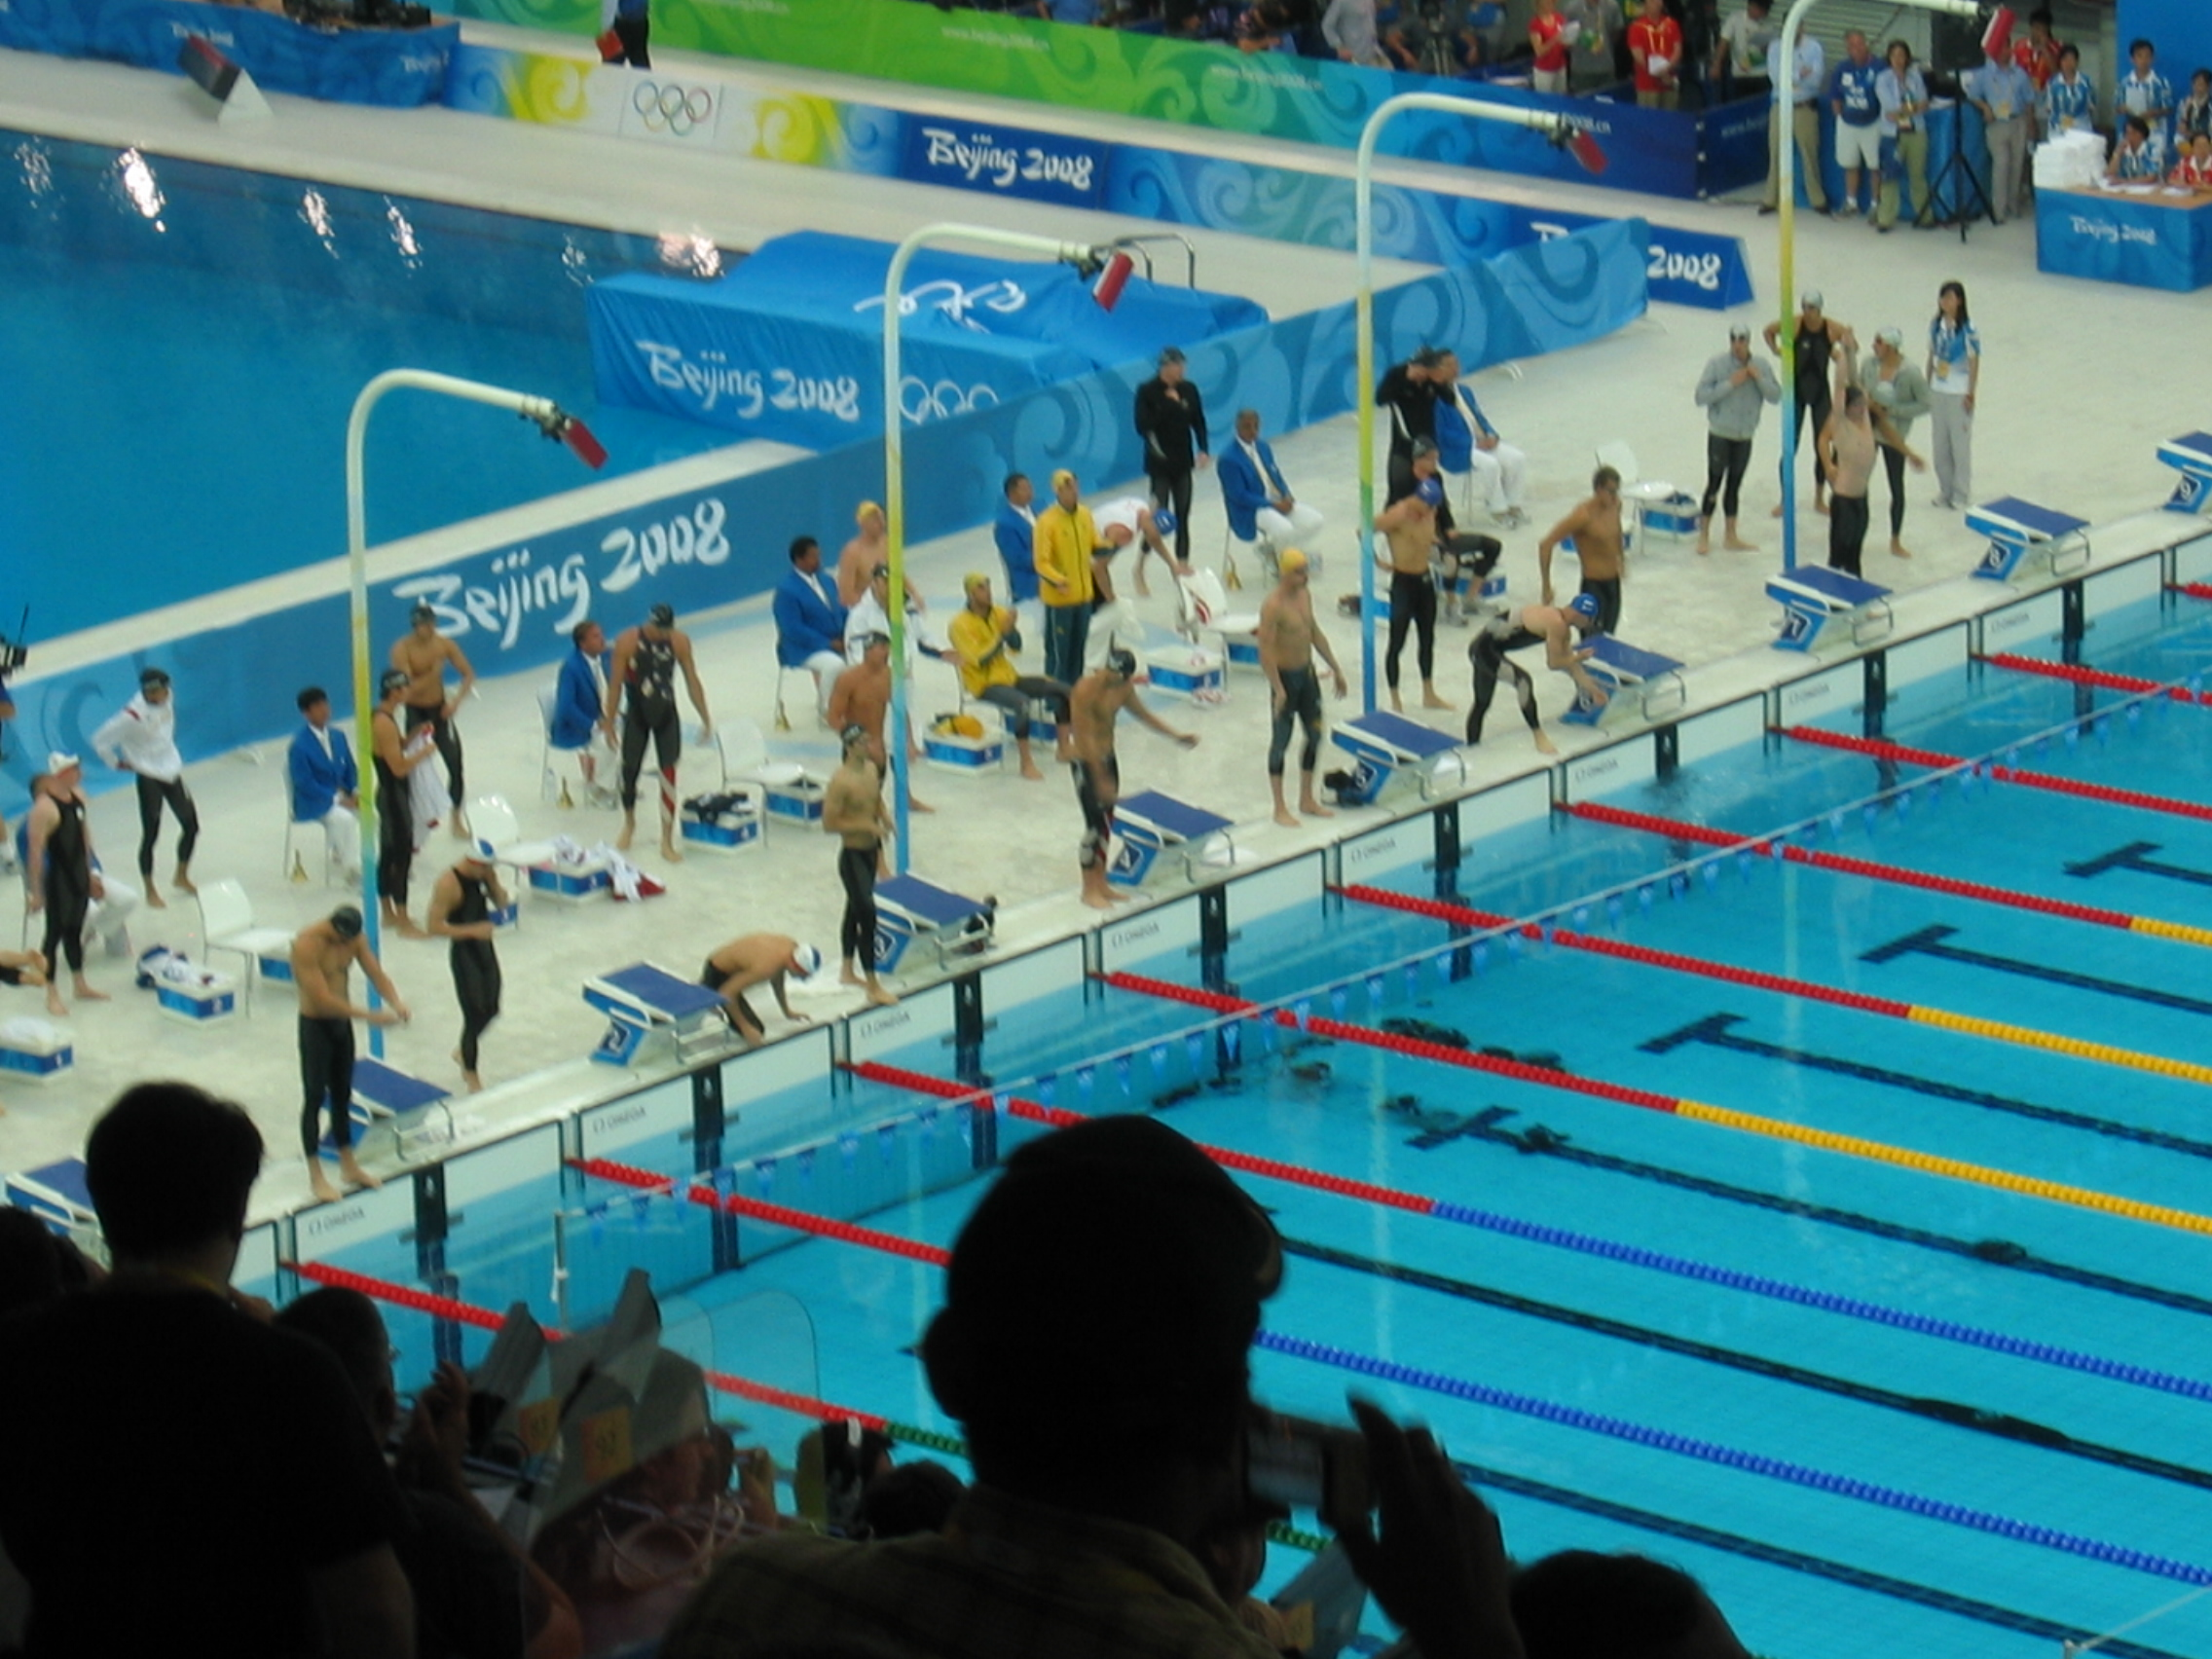 The most exciting race I've covered in Olympic swimming